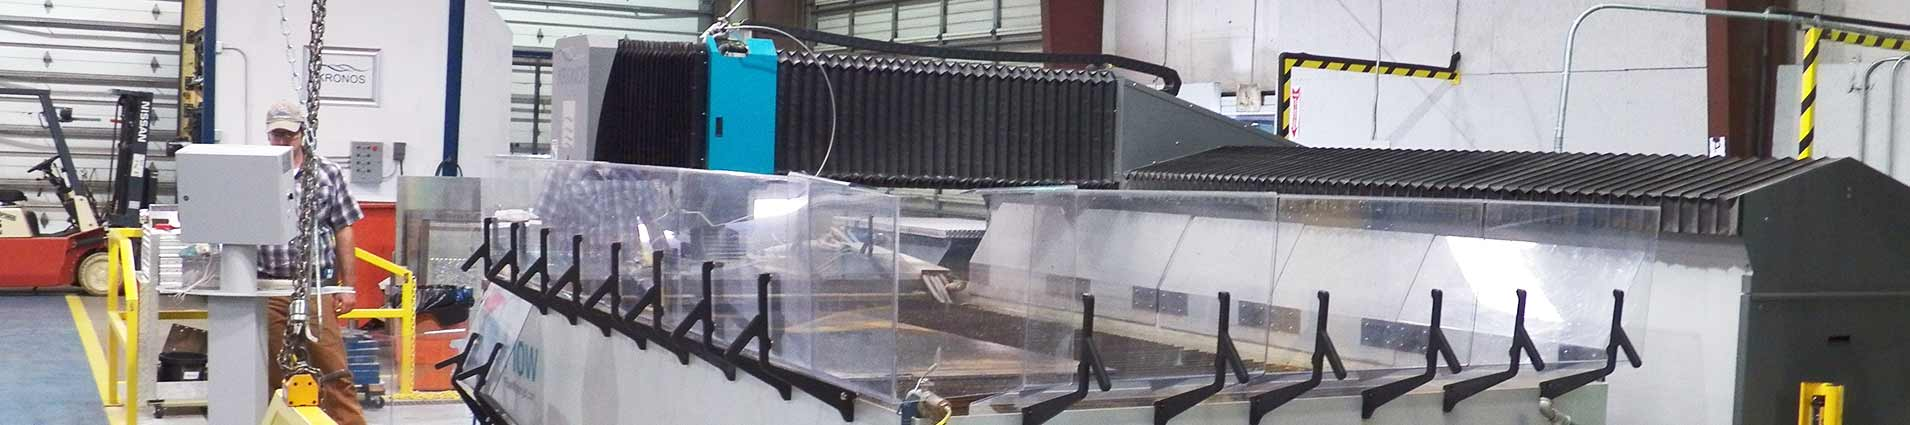 Flow waterjet at Kronos manufacturing facility